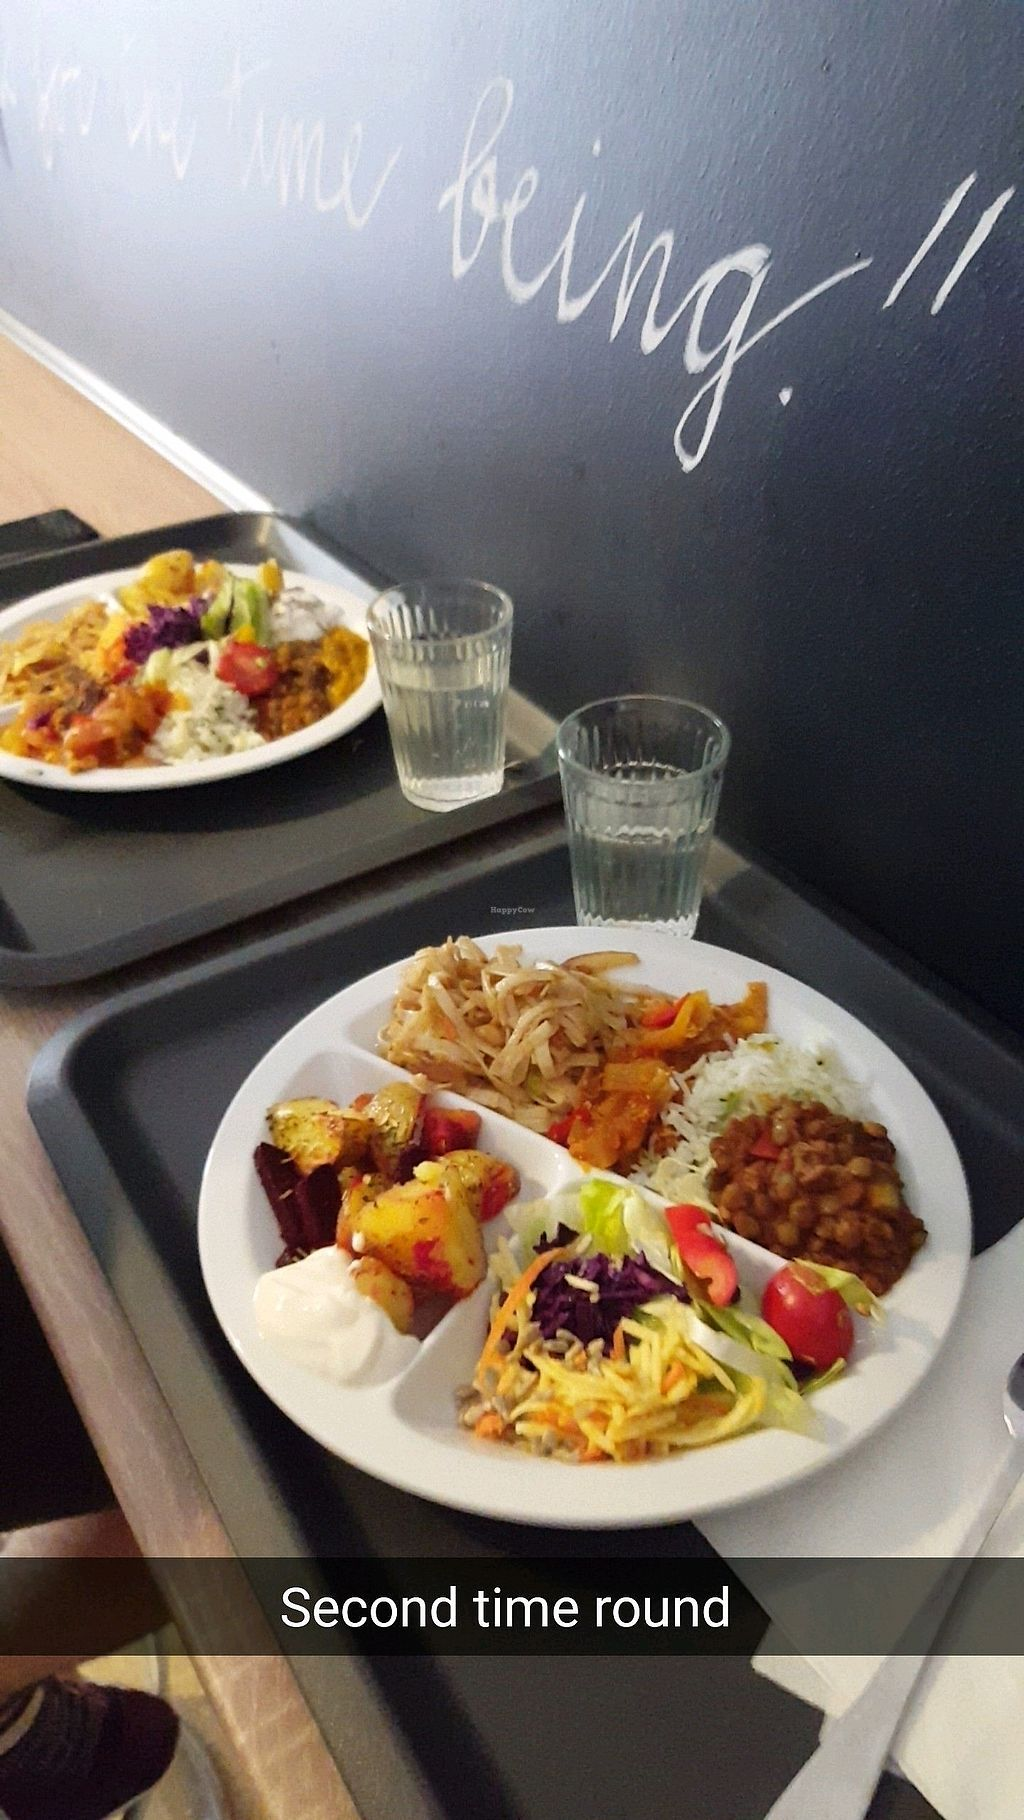 """Photo of Sandokan Vegan Bistro  by <a href=""""/members/profile/Isabellelm"""">Isabellelm</a> <br/>Second visit. Very tasty <br/> July 20, 2017  - <a href='/contact/abuse/image/89122/282450'>Report</a>"""